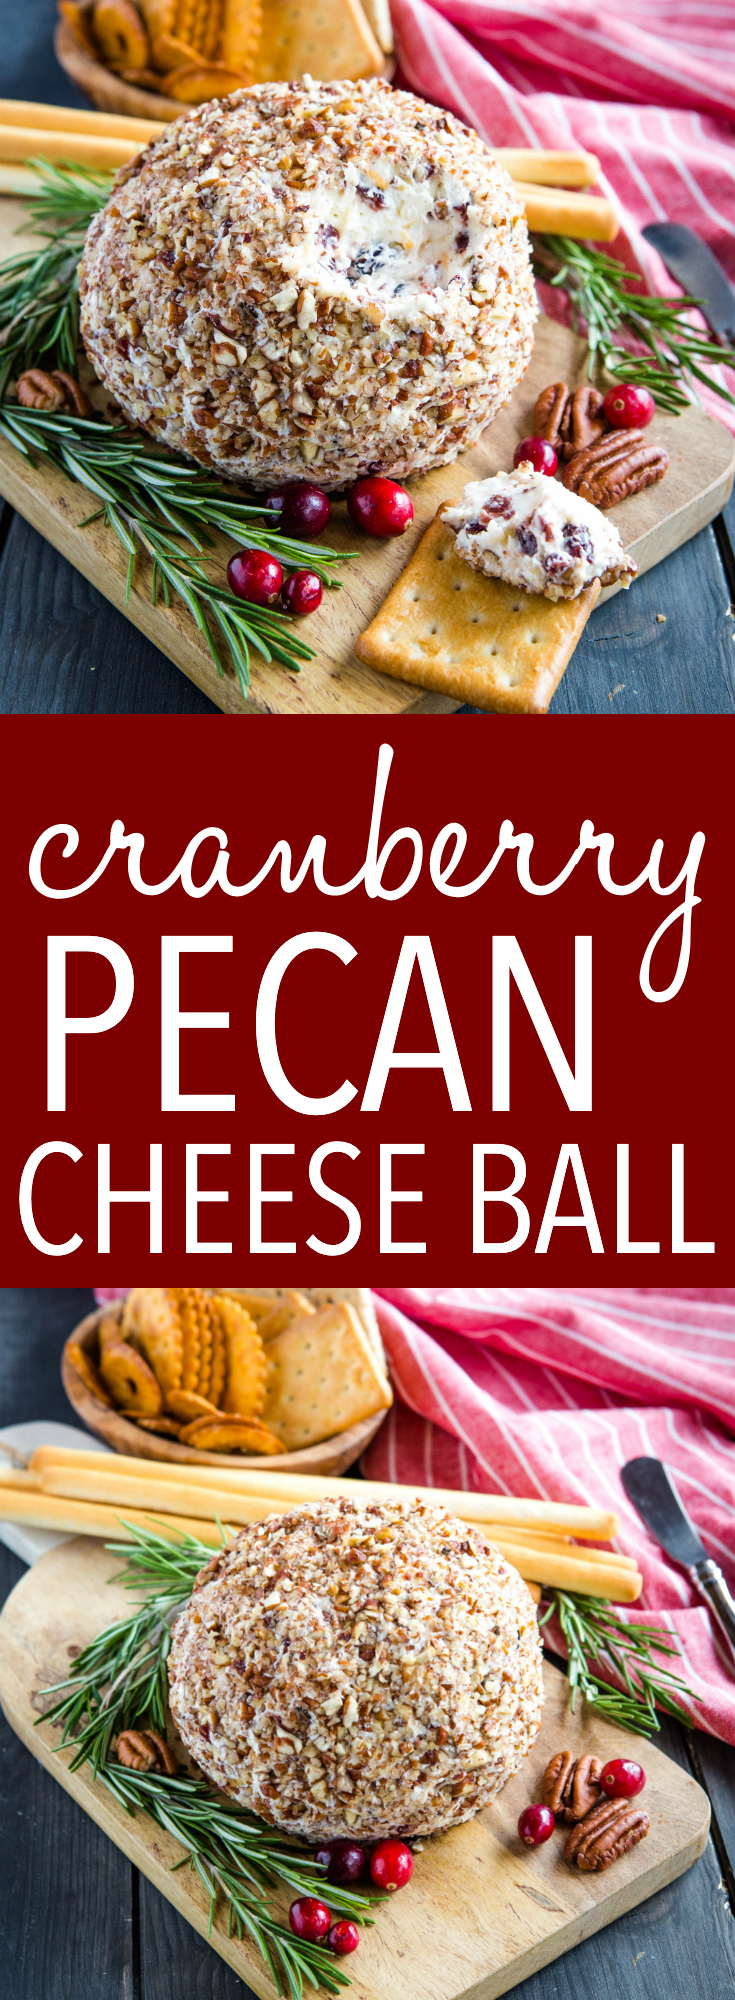 This Cranberry Pecan Cheese Ball is the perfect easy to make appetizer or snack for entertaining! It can be served with your favourite crackers or veggies! Recipe from thebusybaker.ca! #cheeseball #thanksgiving #christmas #appetizer #snack #newyearseve #nye via @busybakerblog